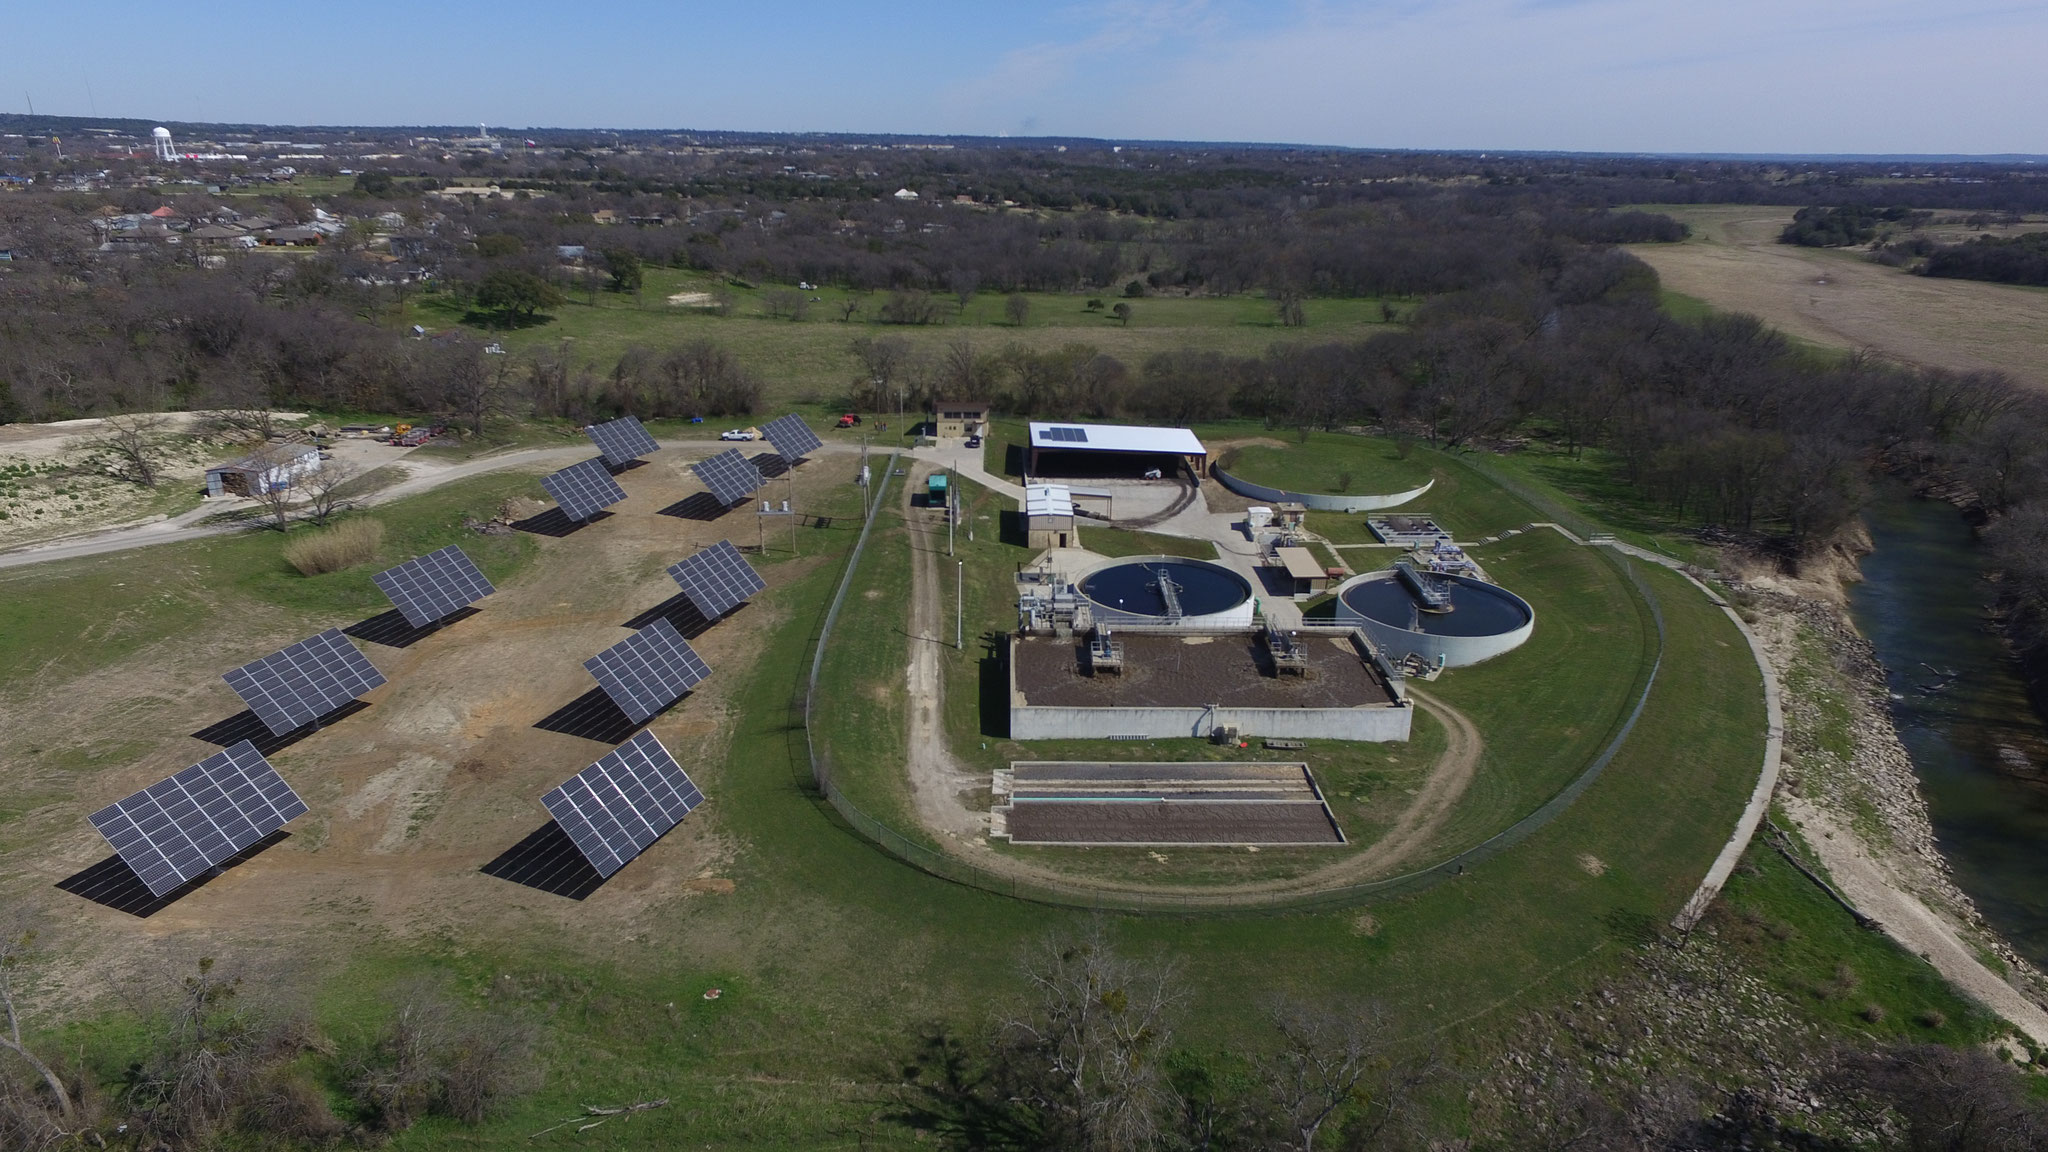 2-Axis Trackers: the ULTIMATE in solar energy for your ranch or